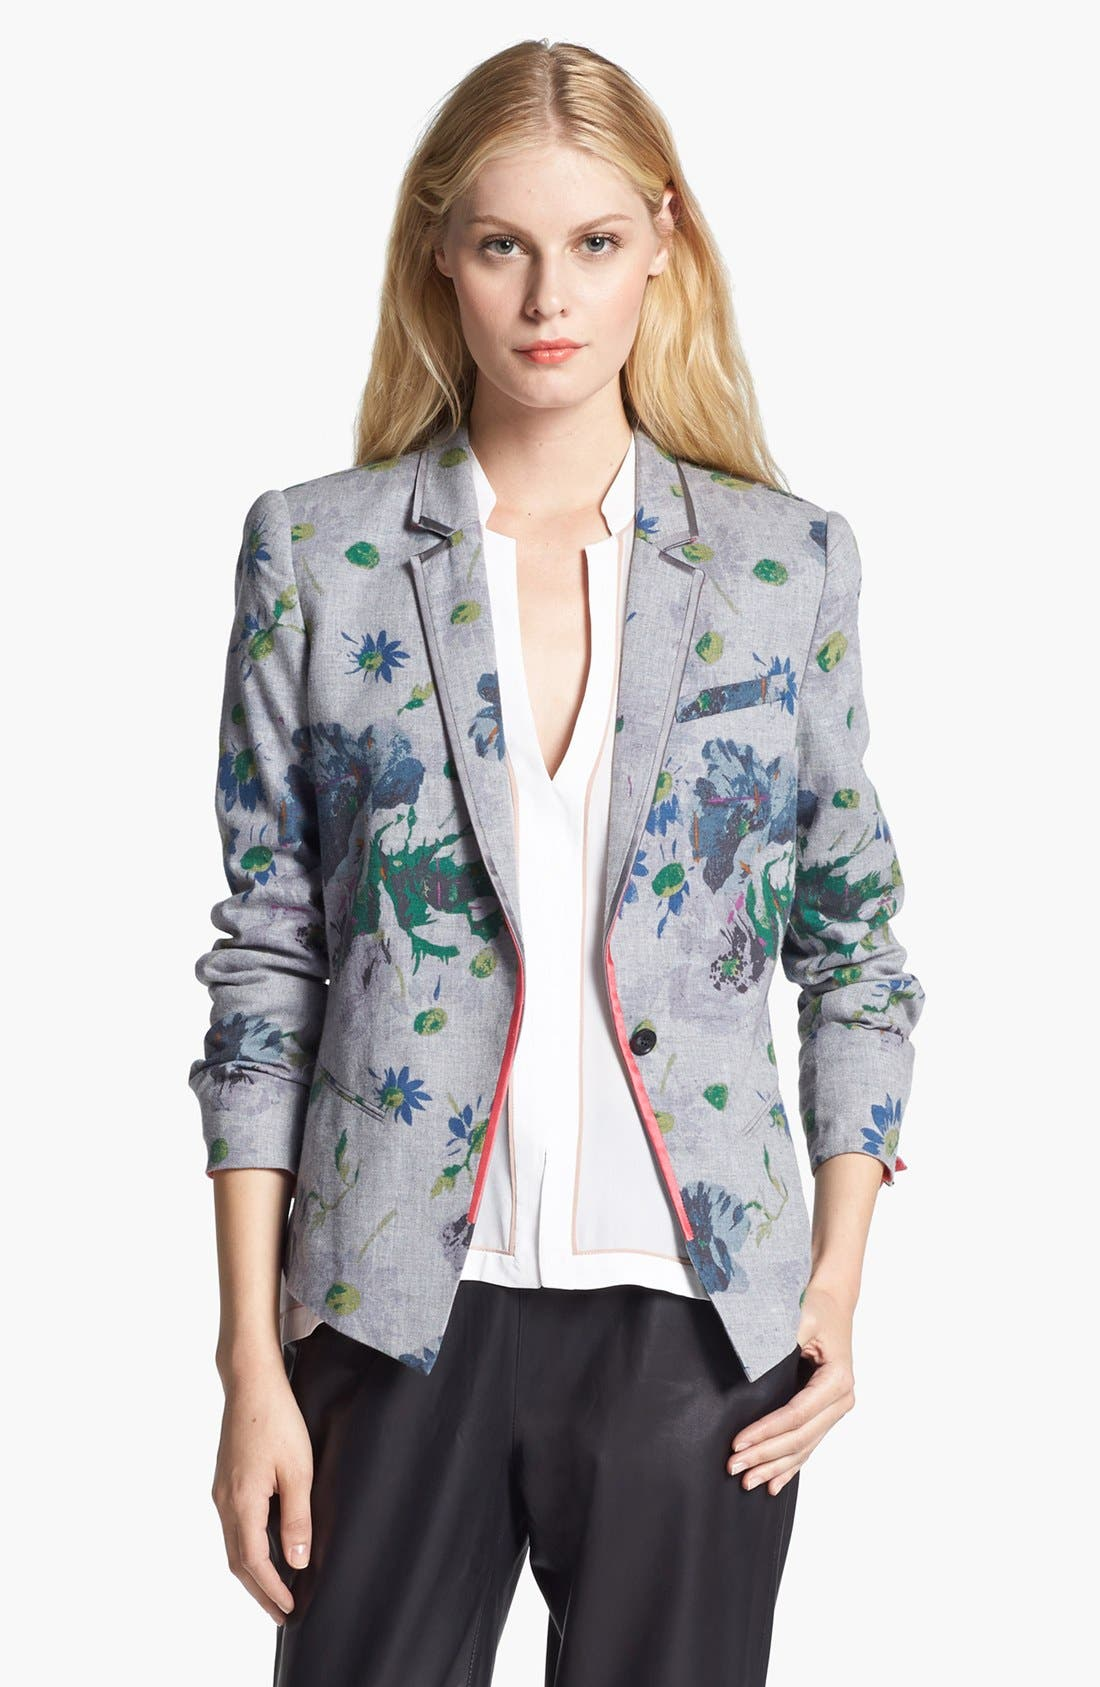 Alternate Image 1 Selected - Elizabeth and James 'Bourne' Floral Print Flannel Jacket